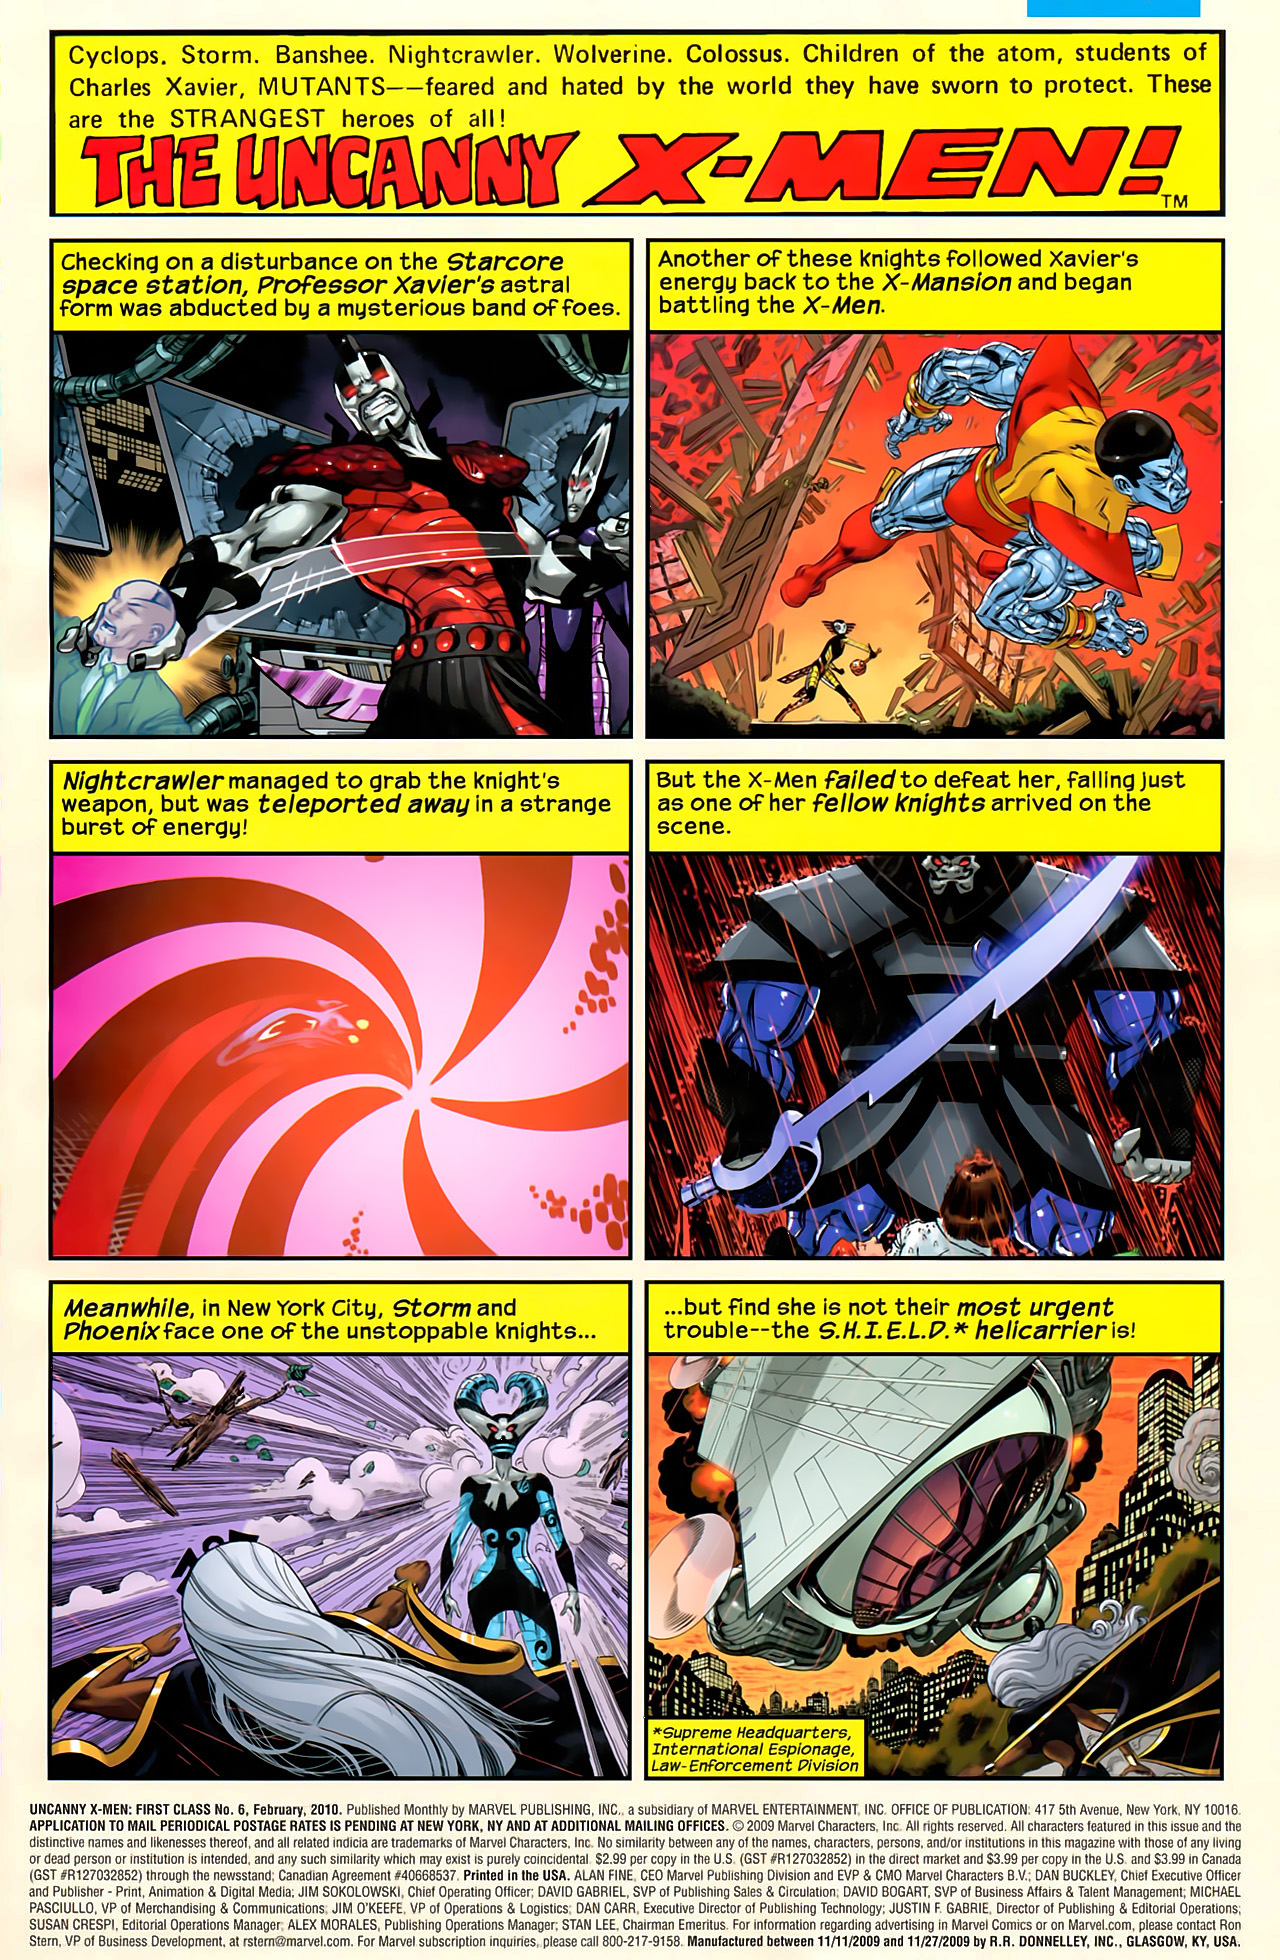 Read online Uncanny X-Men: First Class comic -  Issue #6 - 2